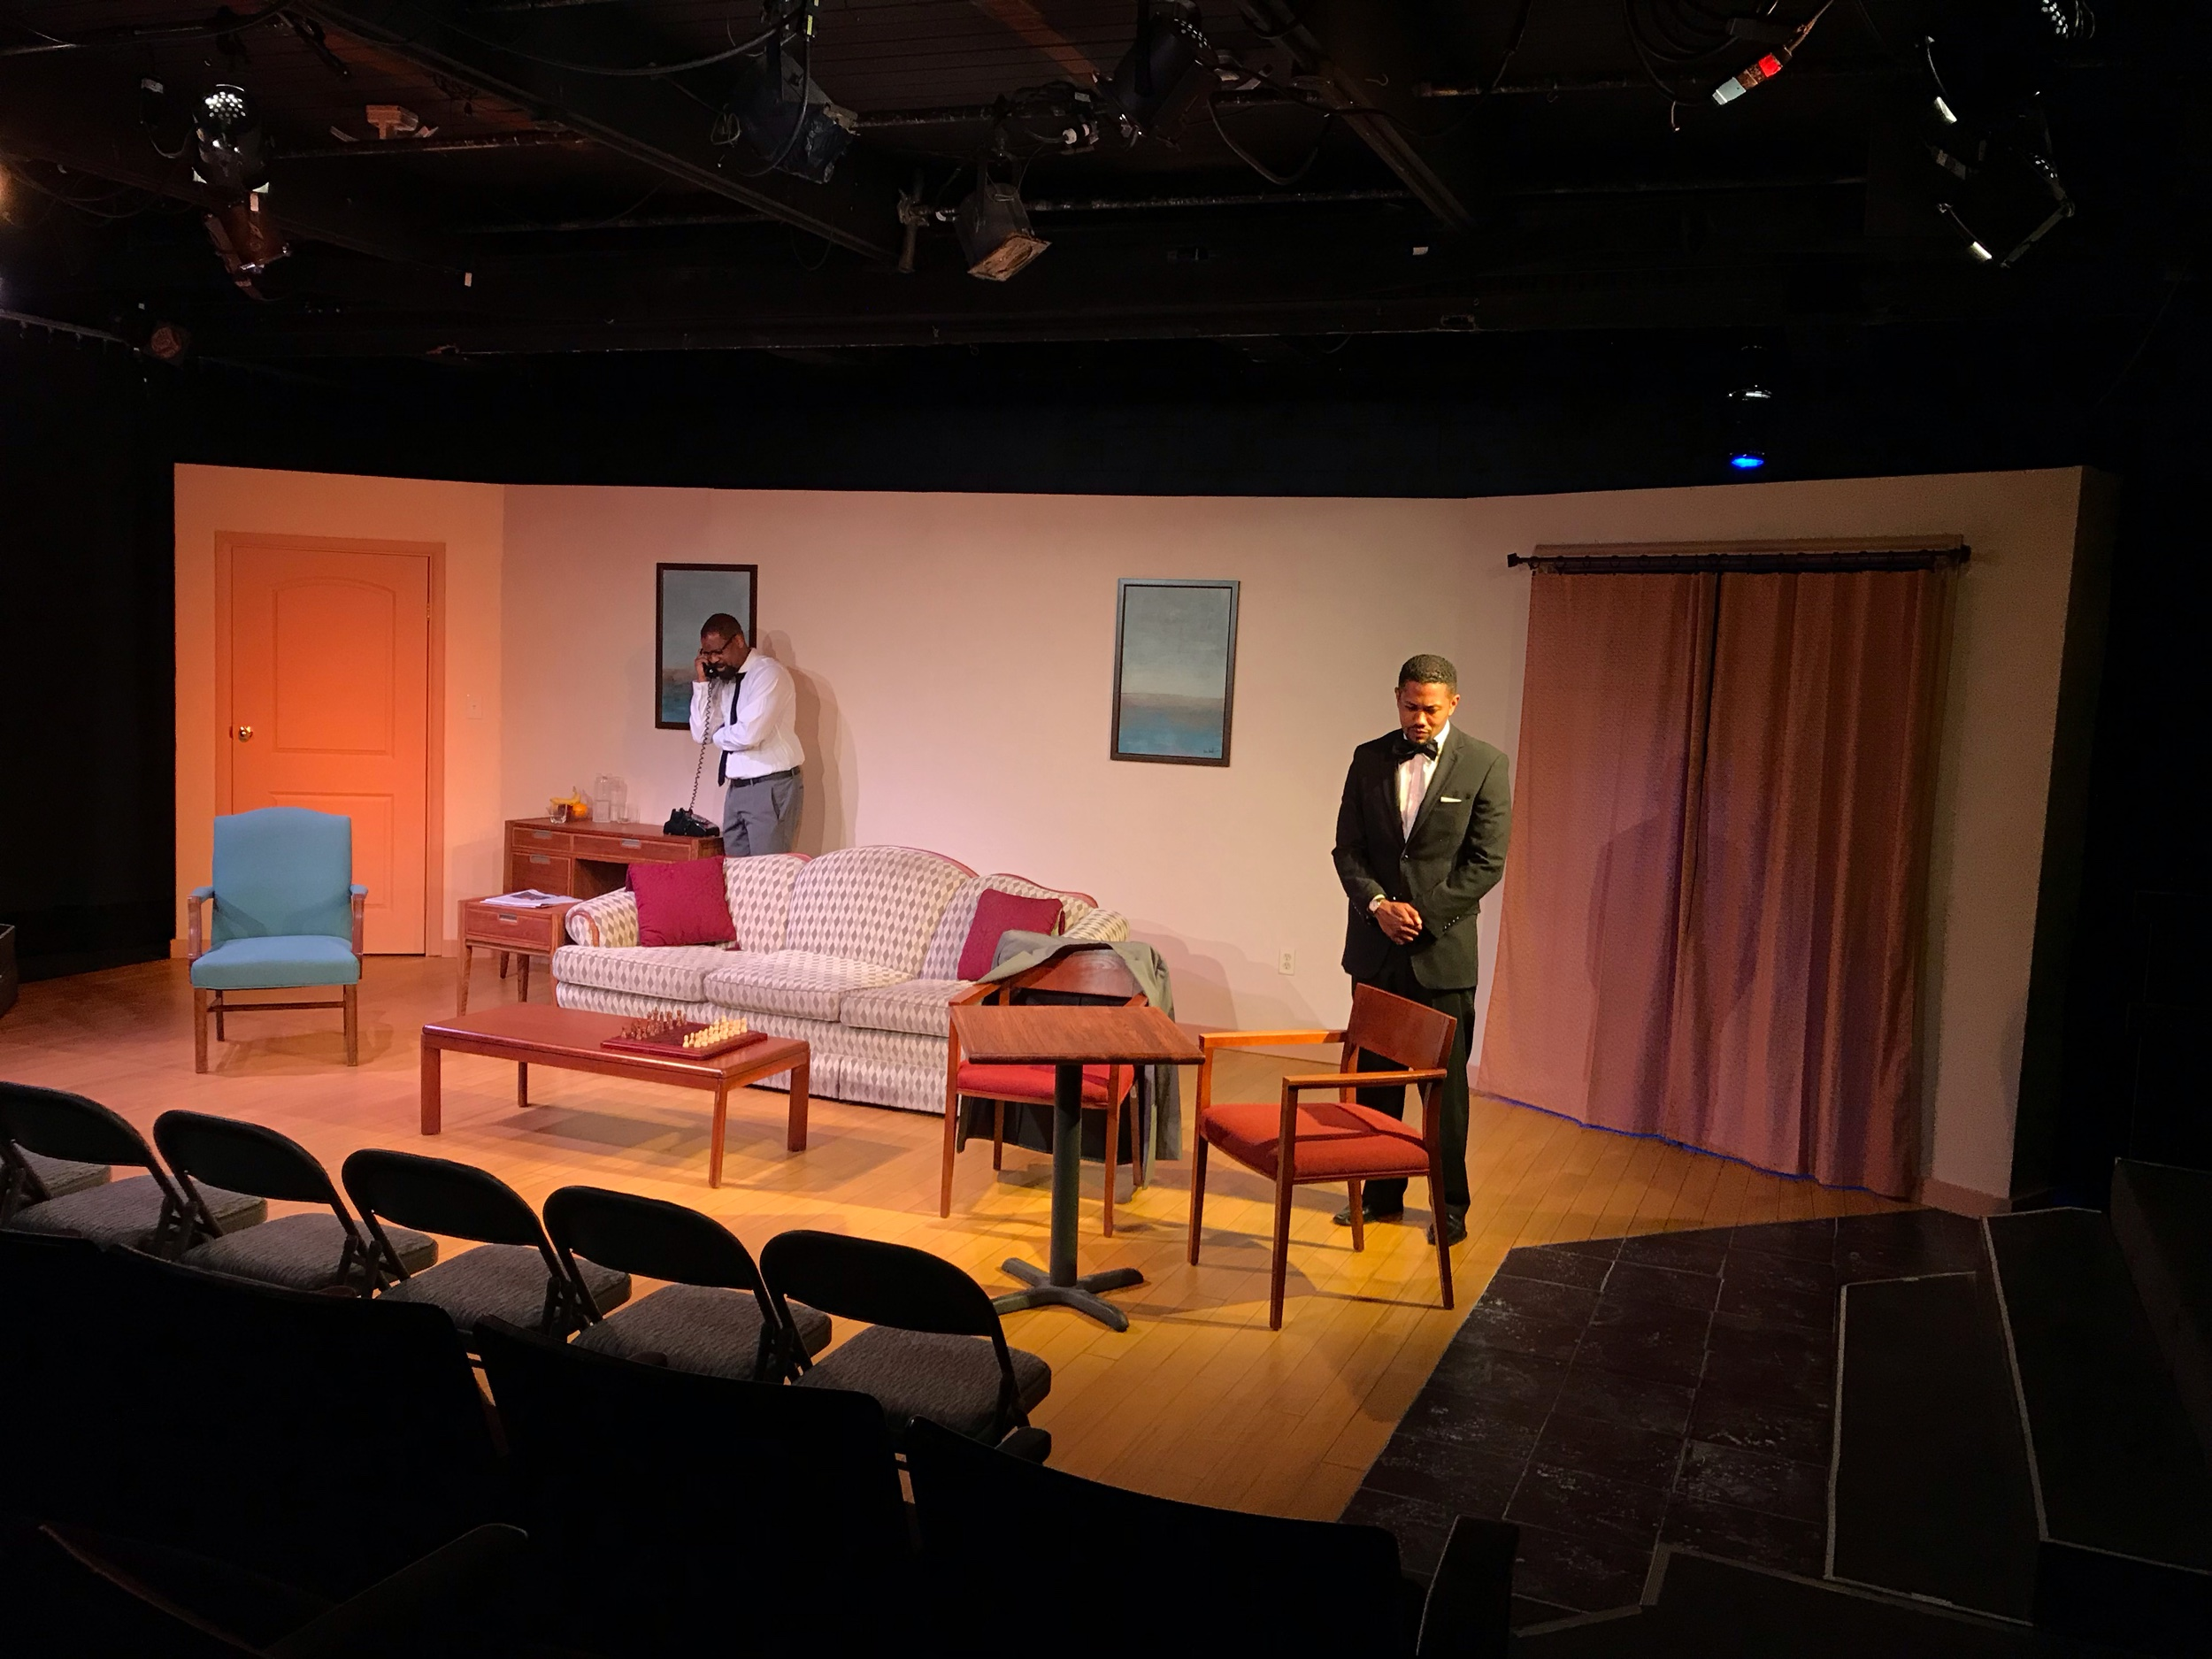 The Meeting at the Zephyr Theatre, May 19th, 2019.  Directed by Bill Cobbs  Produced by Bechir Sylvain  Lighting by Brandin Bruce  Production Manager: Katy Jacoby